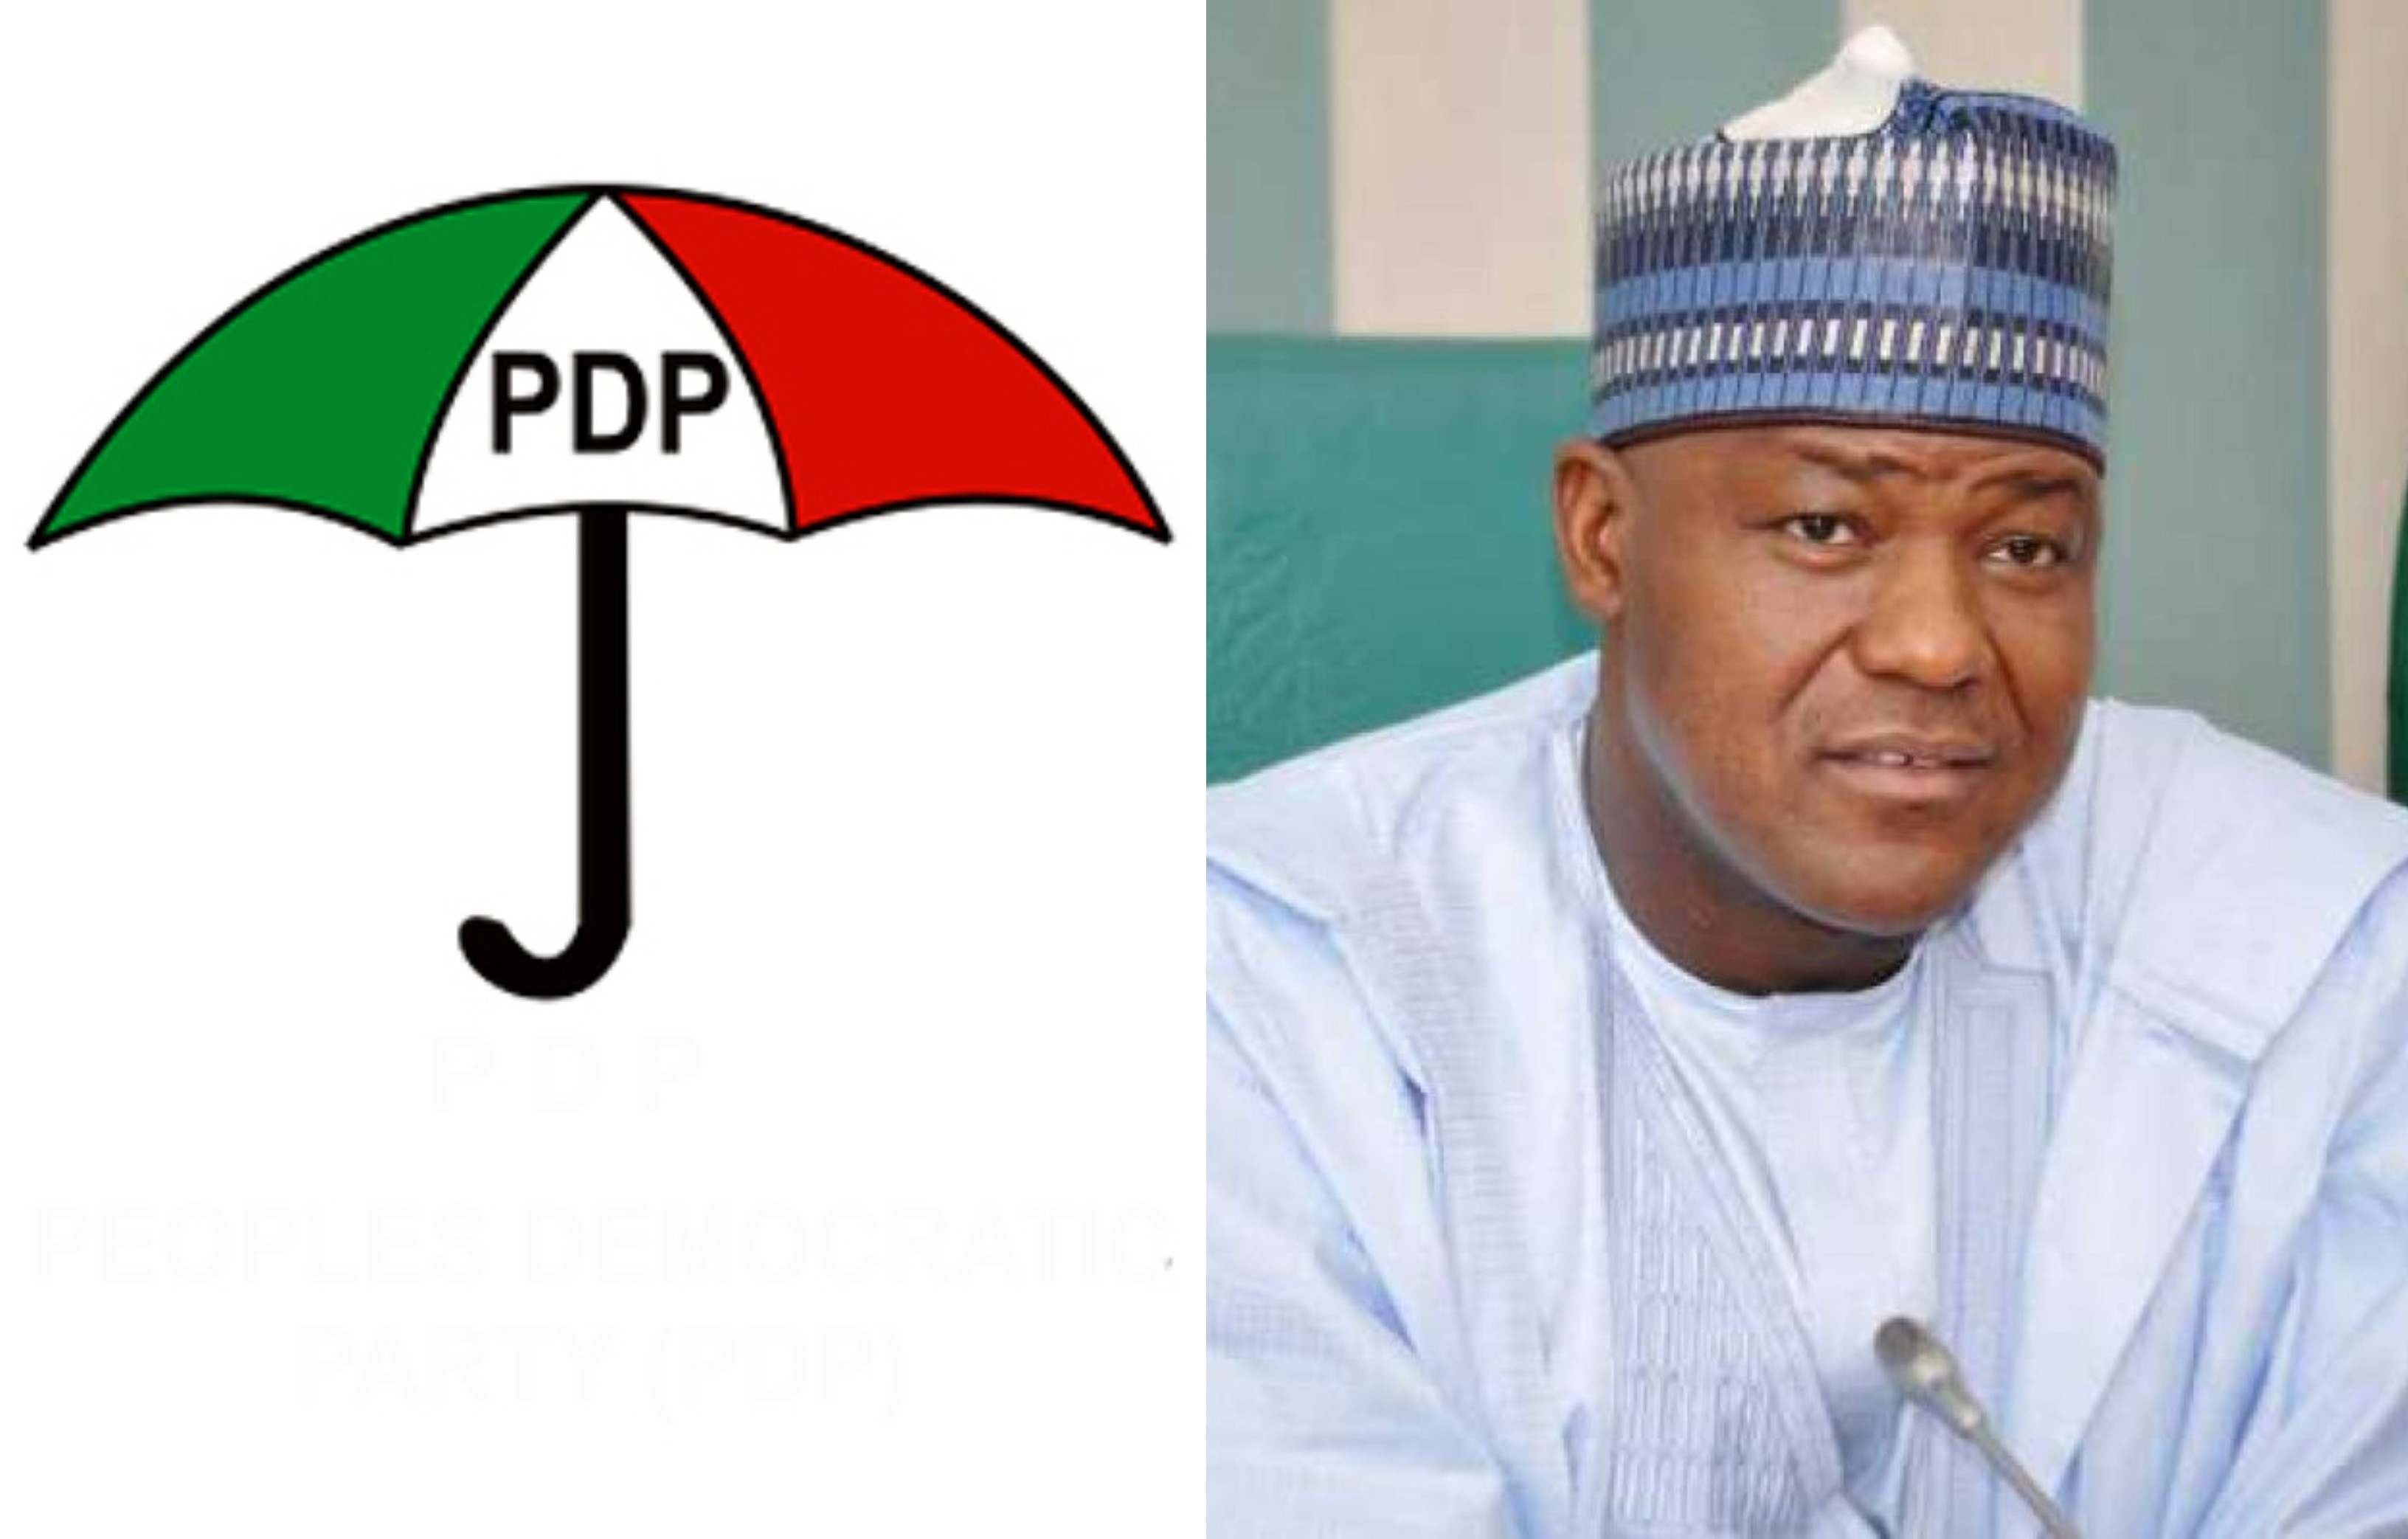 Dogara's 2023 Vice Presidential ambition is likely the reason for his defection - PDP BoT lindaikejisblog